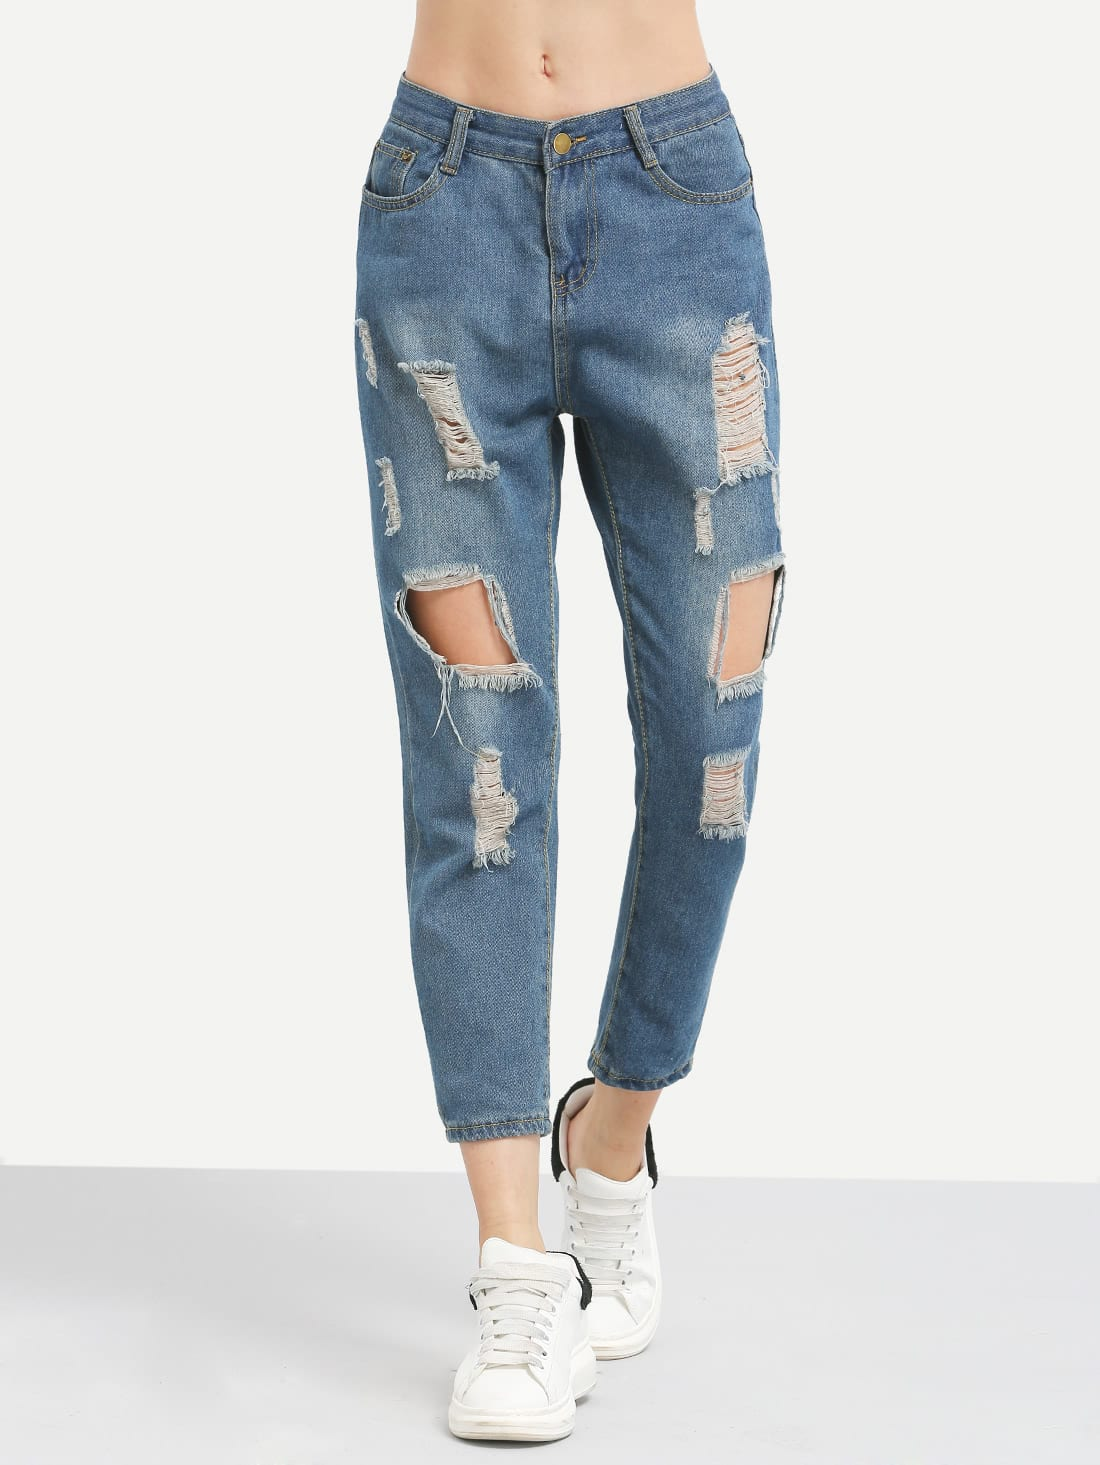 Classic Mom Jeans